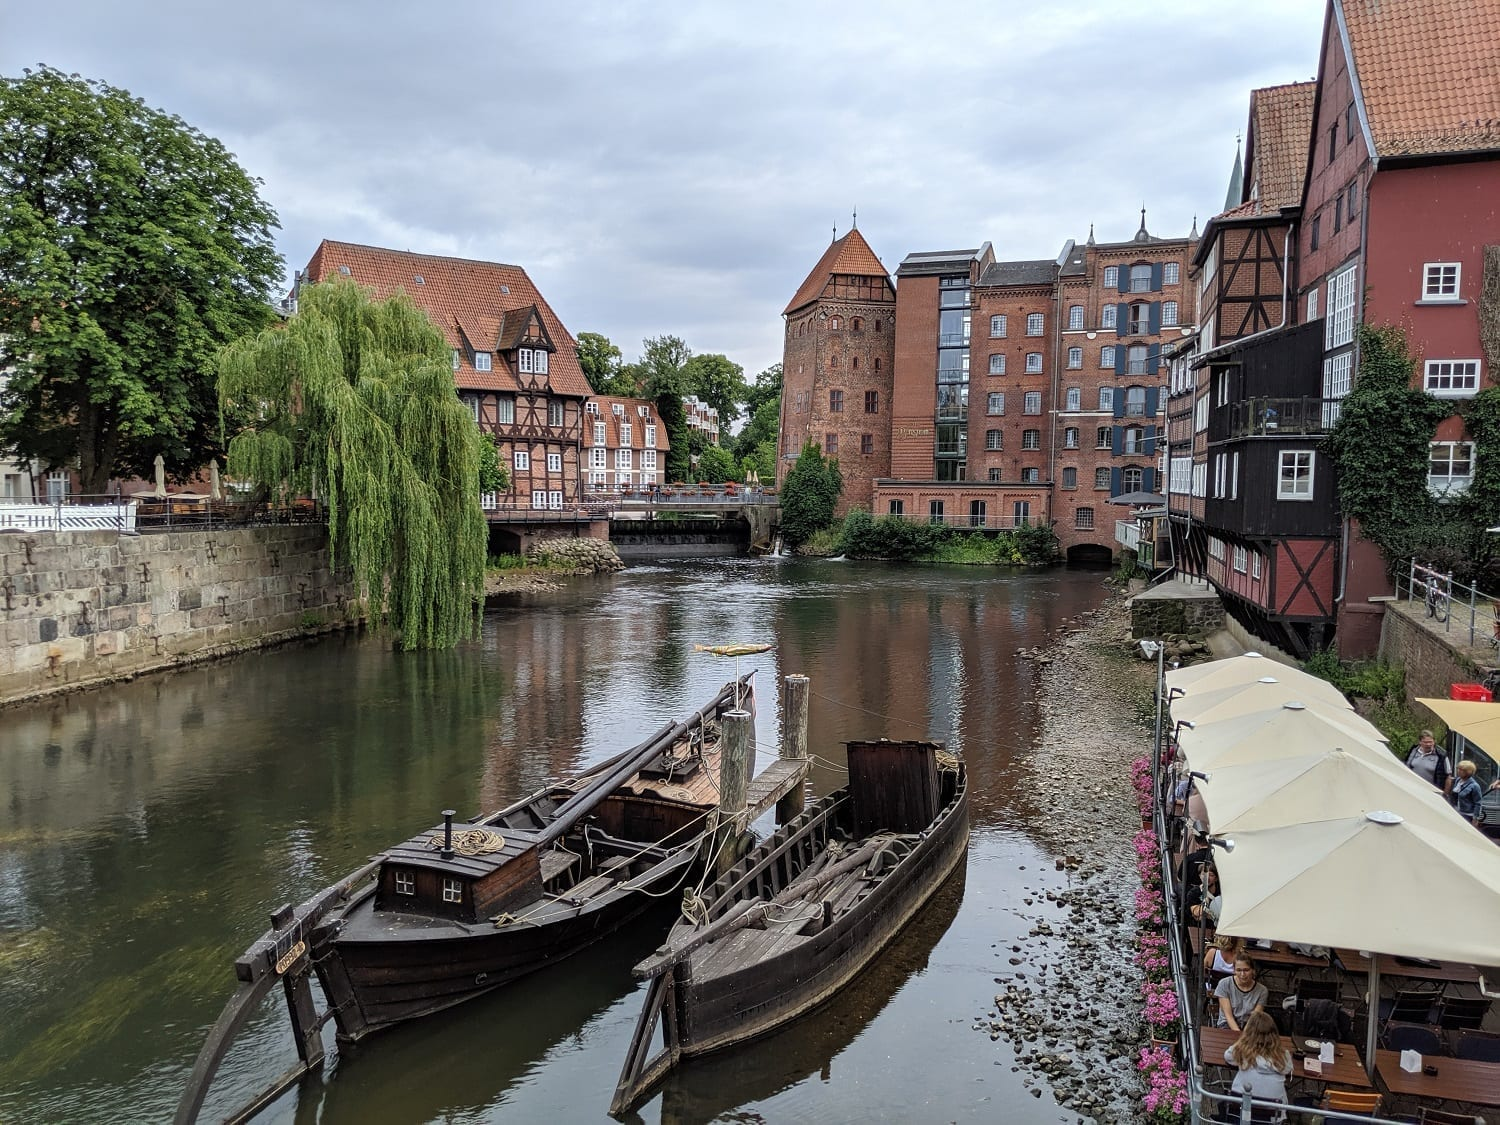 What to do in Lüneburg, Germany-Our Quick visit to this Beautiful Town